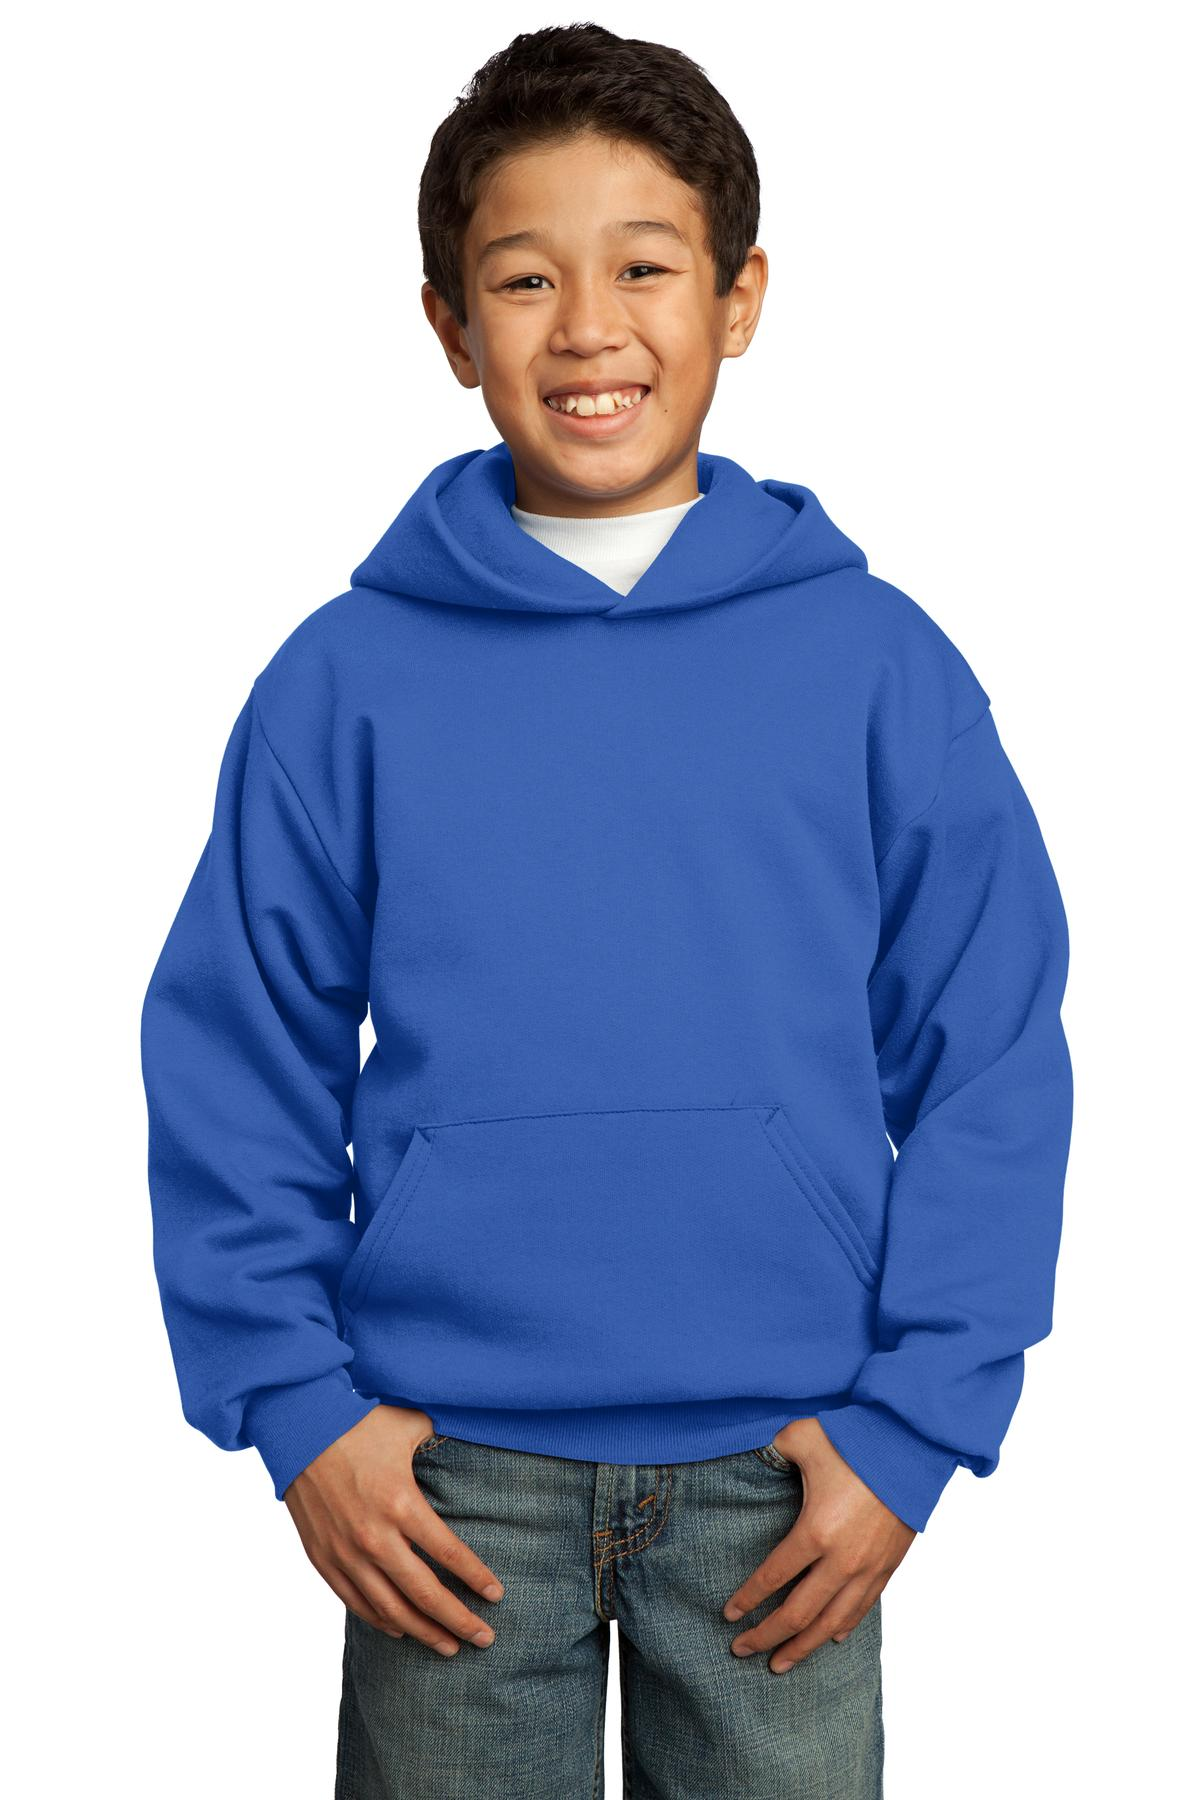 Port & Company ®  - Youth Core Fleece Pullover Hooded Sweatshirt.  PC90YH - Royal